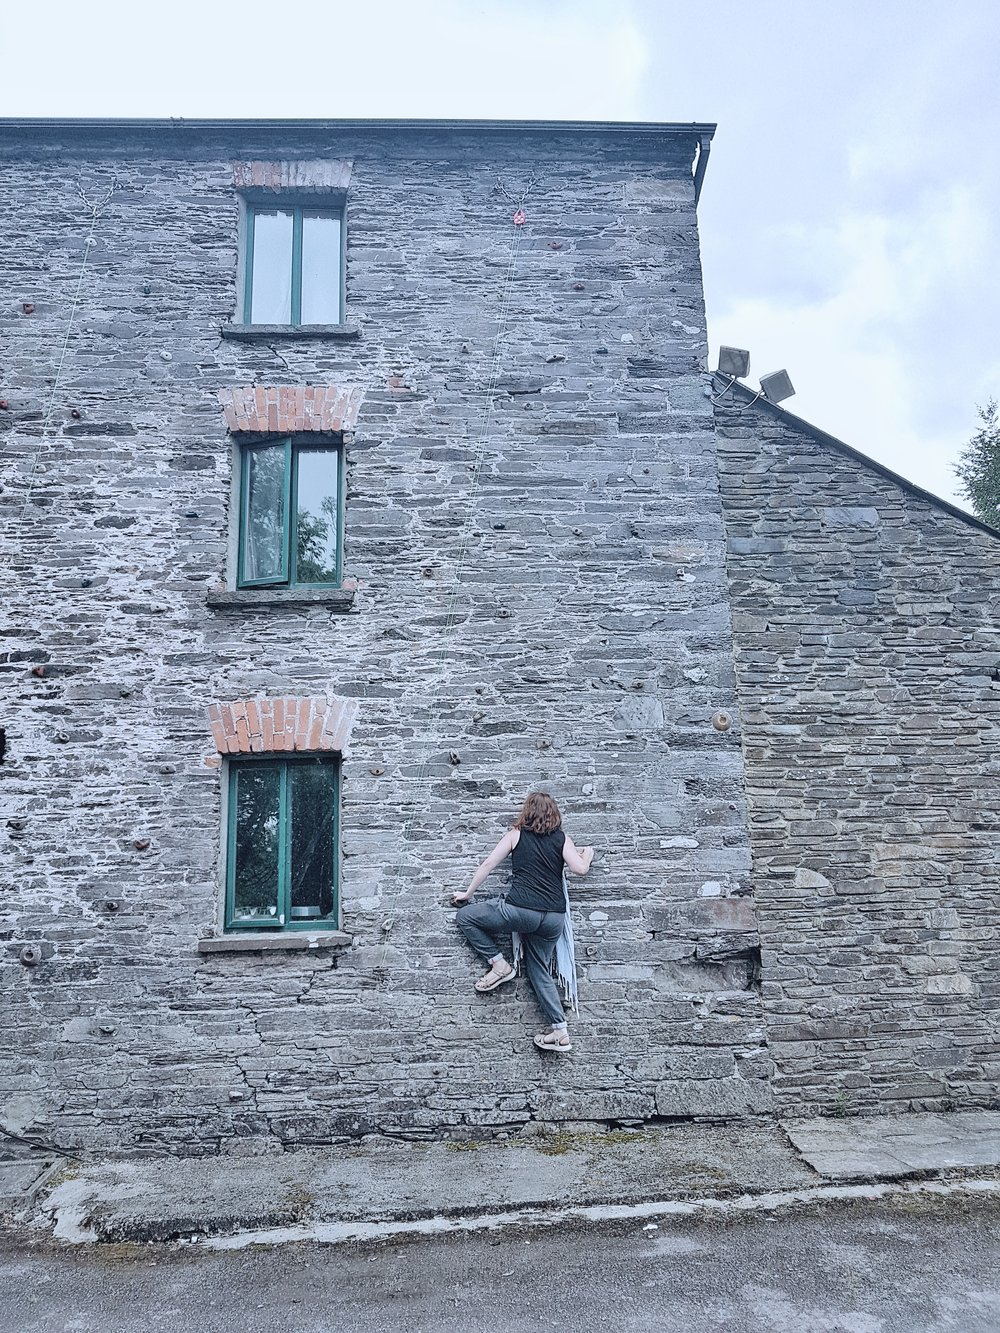 county cork. cork. ireland. irish. history. city. house sitting. old. travel. travel photography. travel photographer.  office space. russagh mill hostel. climbing wall.jpg